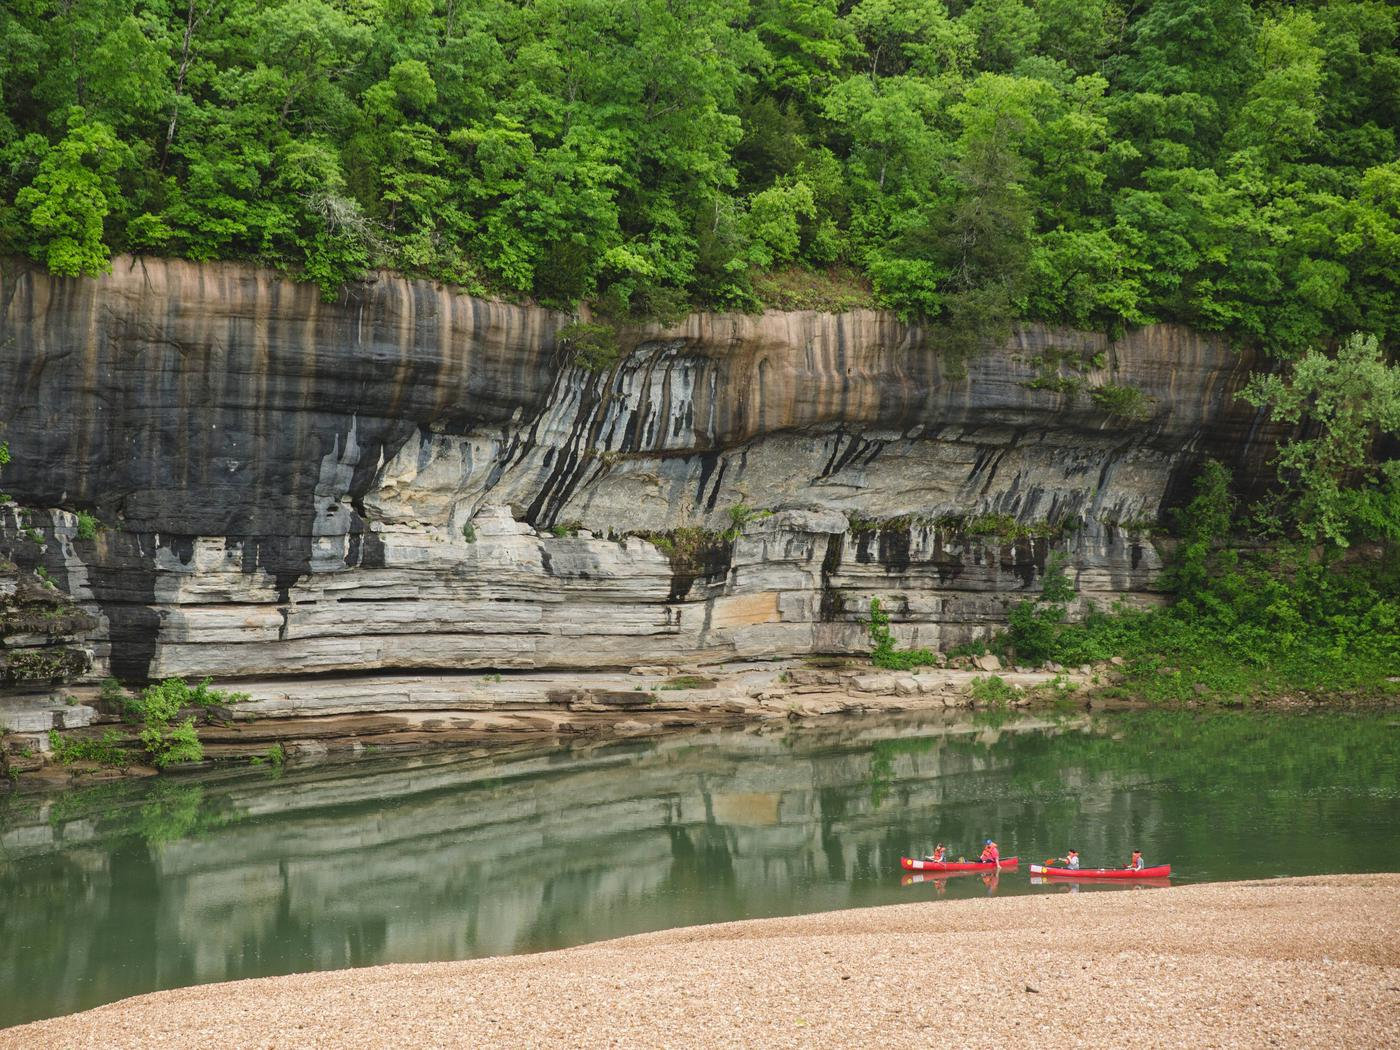 Painted Bluff at Buffalo Point with two red canoes in river.Floaters at Buffalo Point